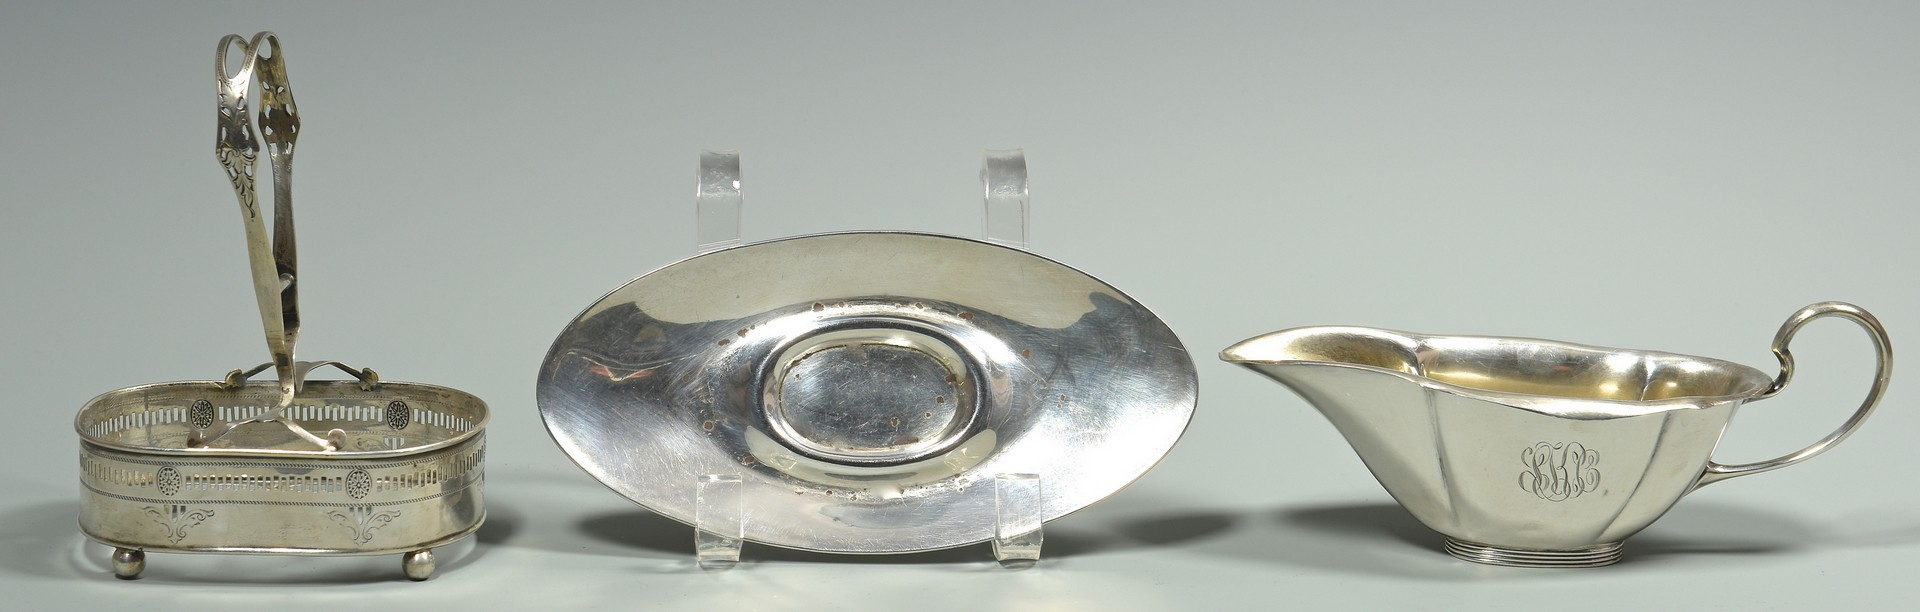 Lot 872: Sterling bread trays, sauce boat and flatware